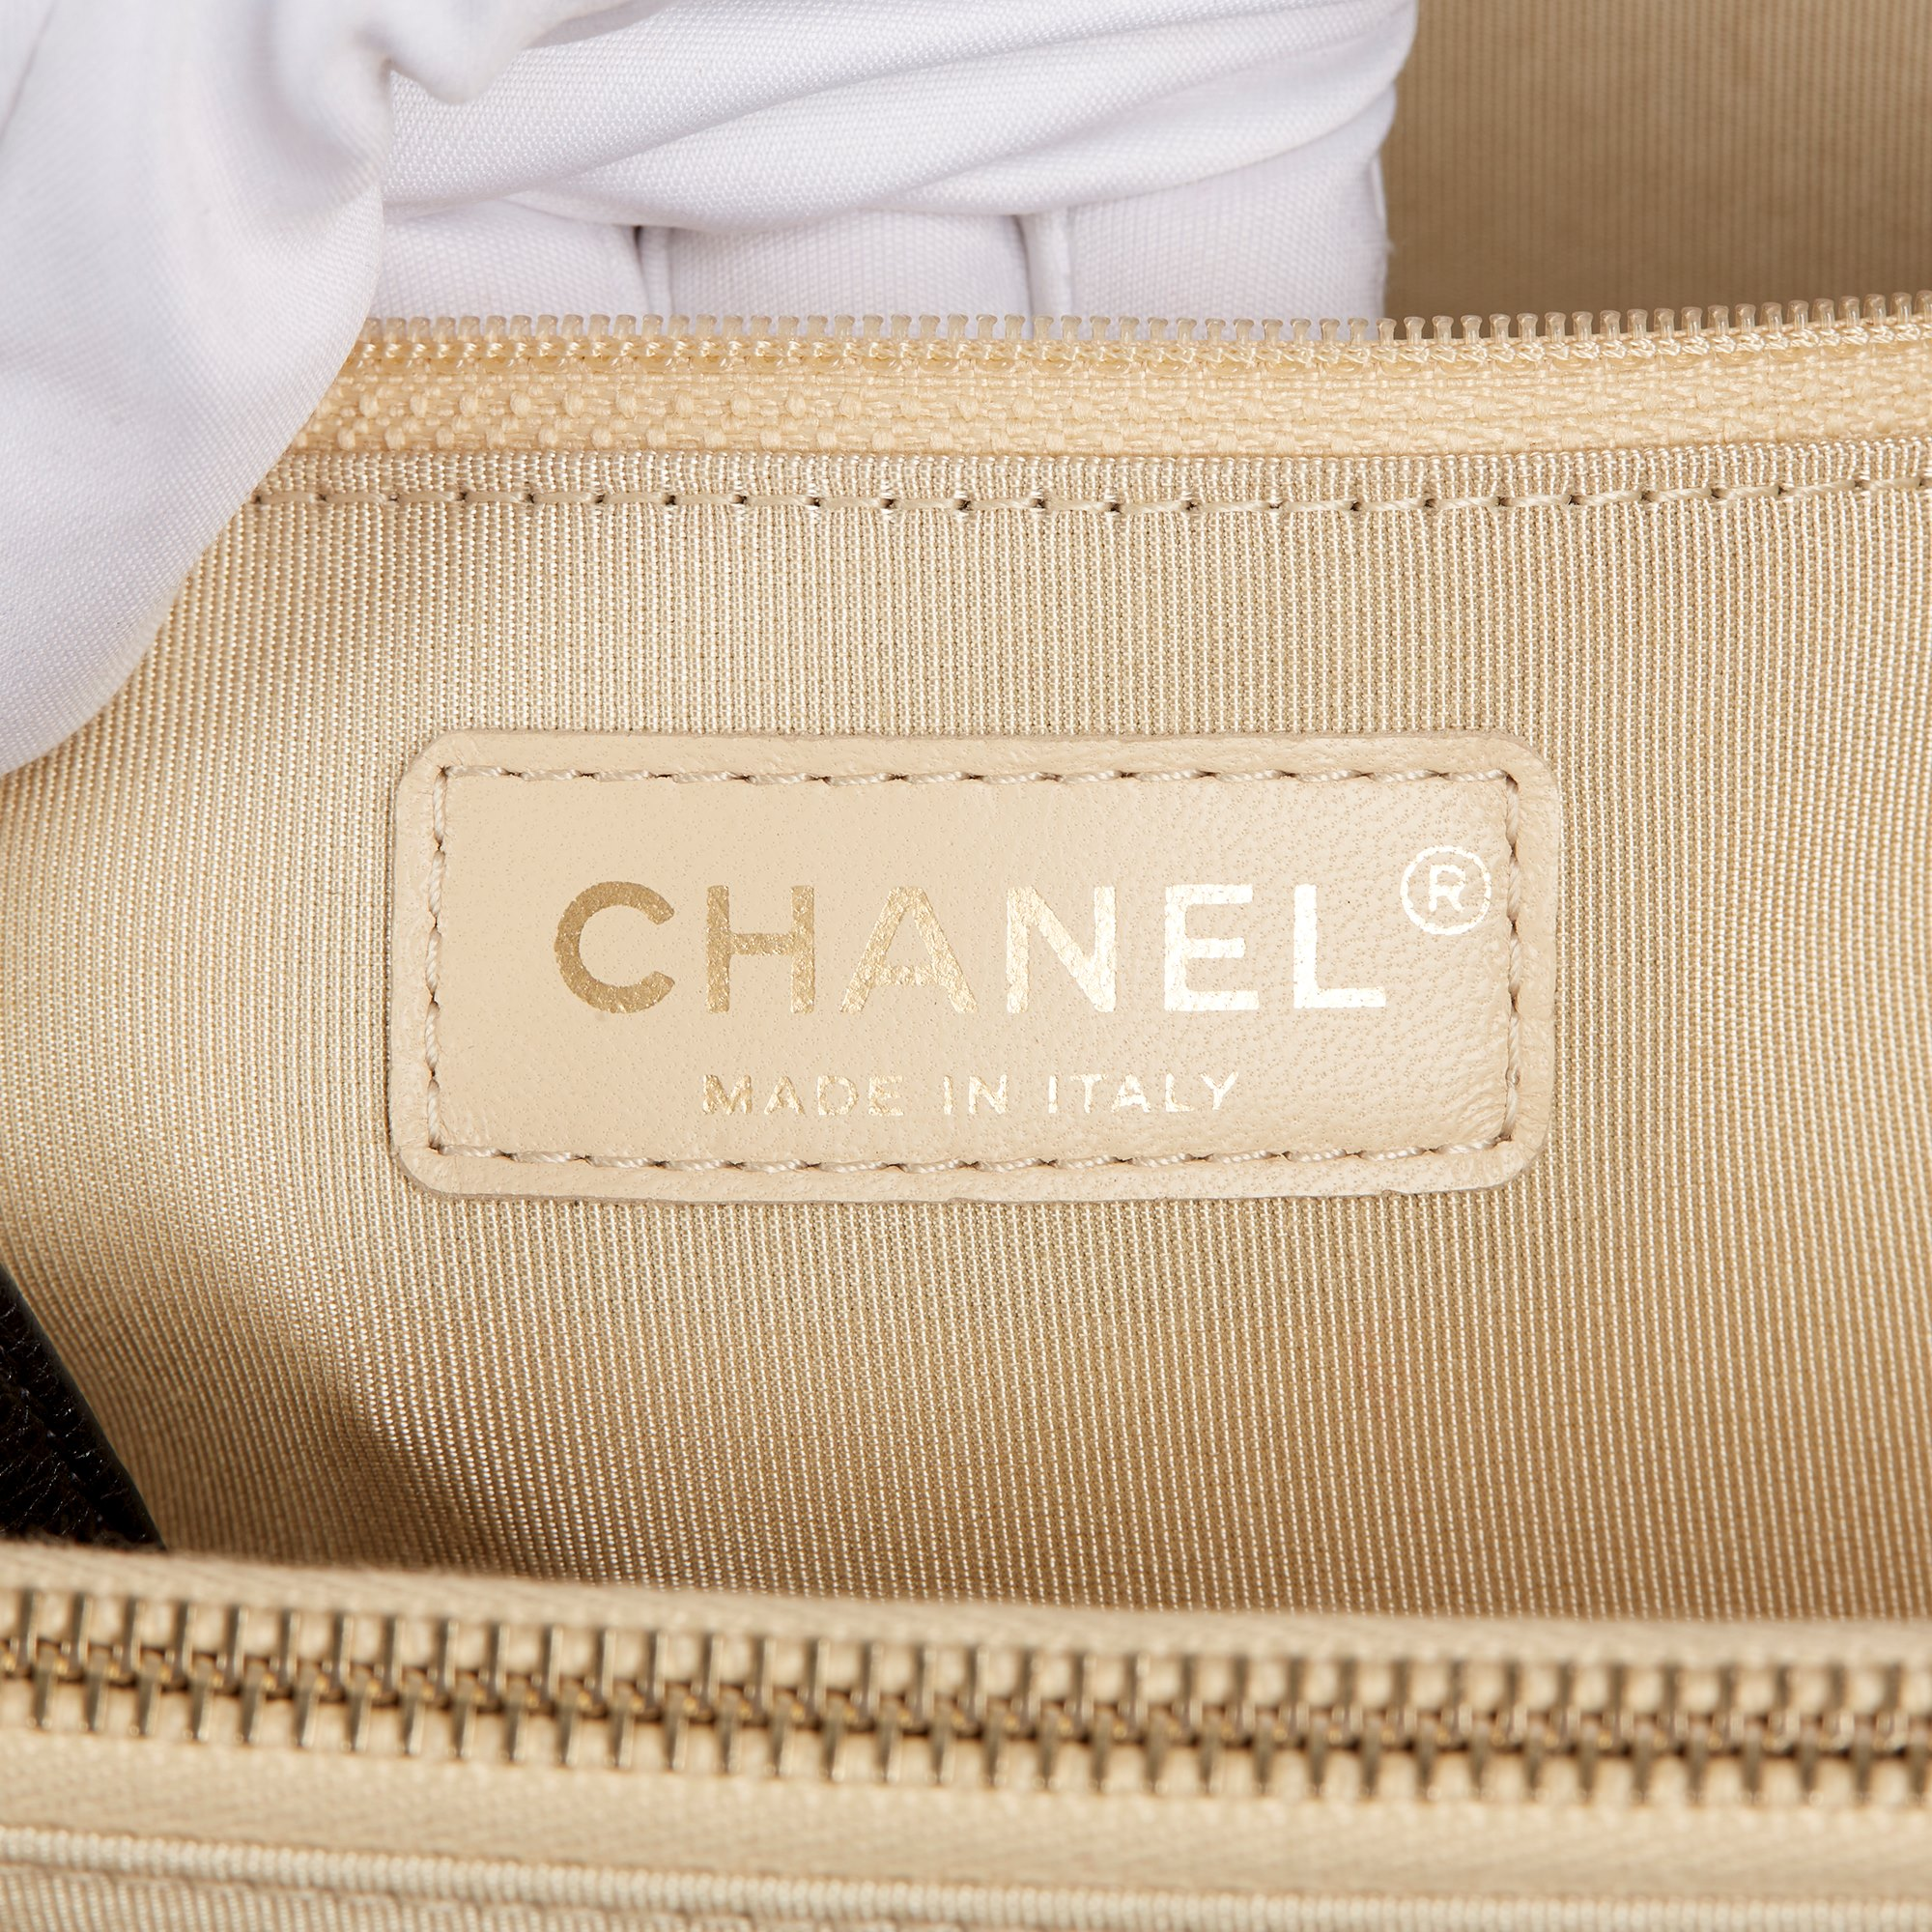 Chanel Black Quilted Calfskin Leather Large Label Click bidping Tote - Image 8 of 11